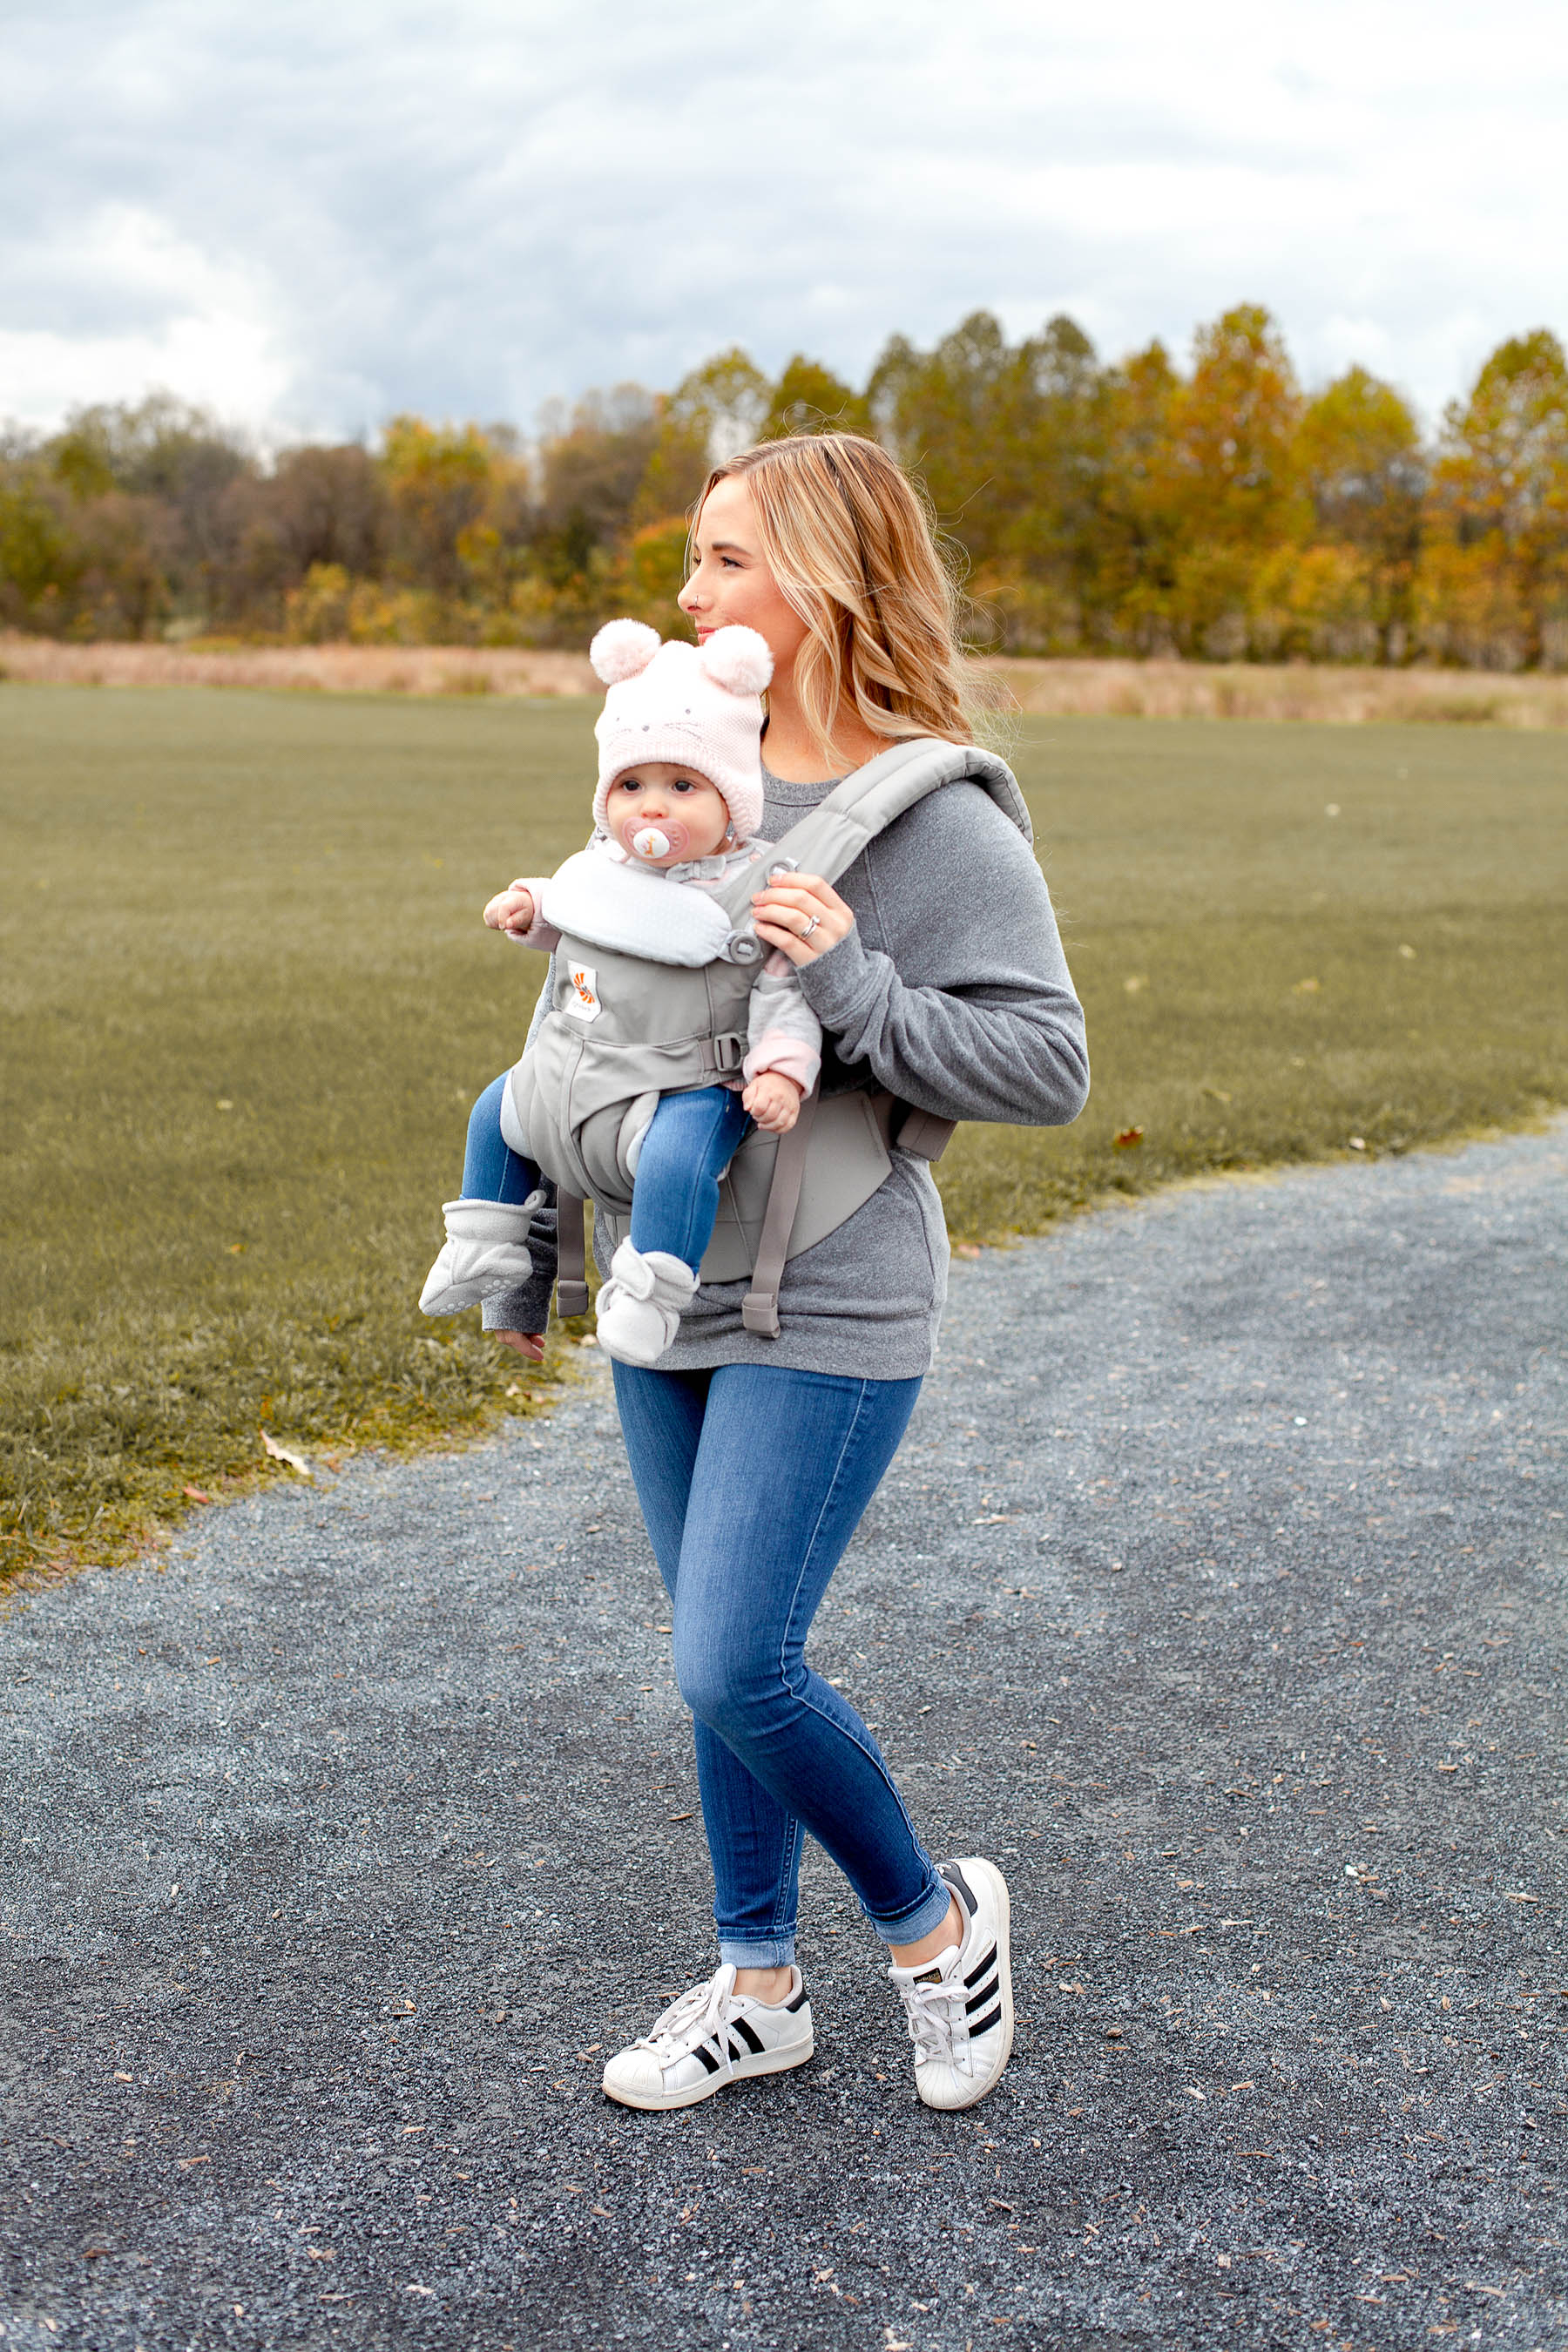 Getting Out With Ergobaby